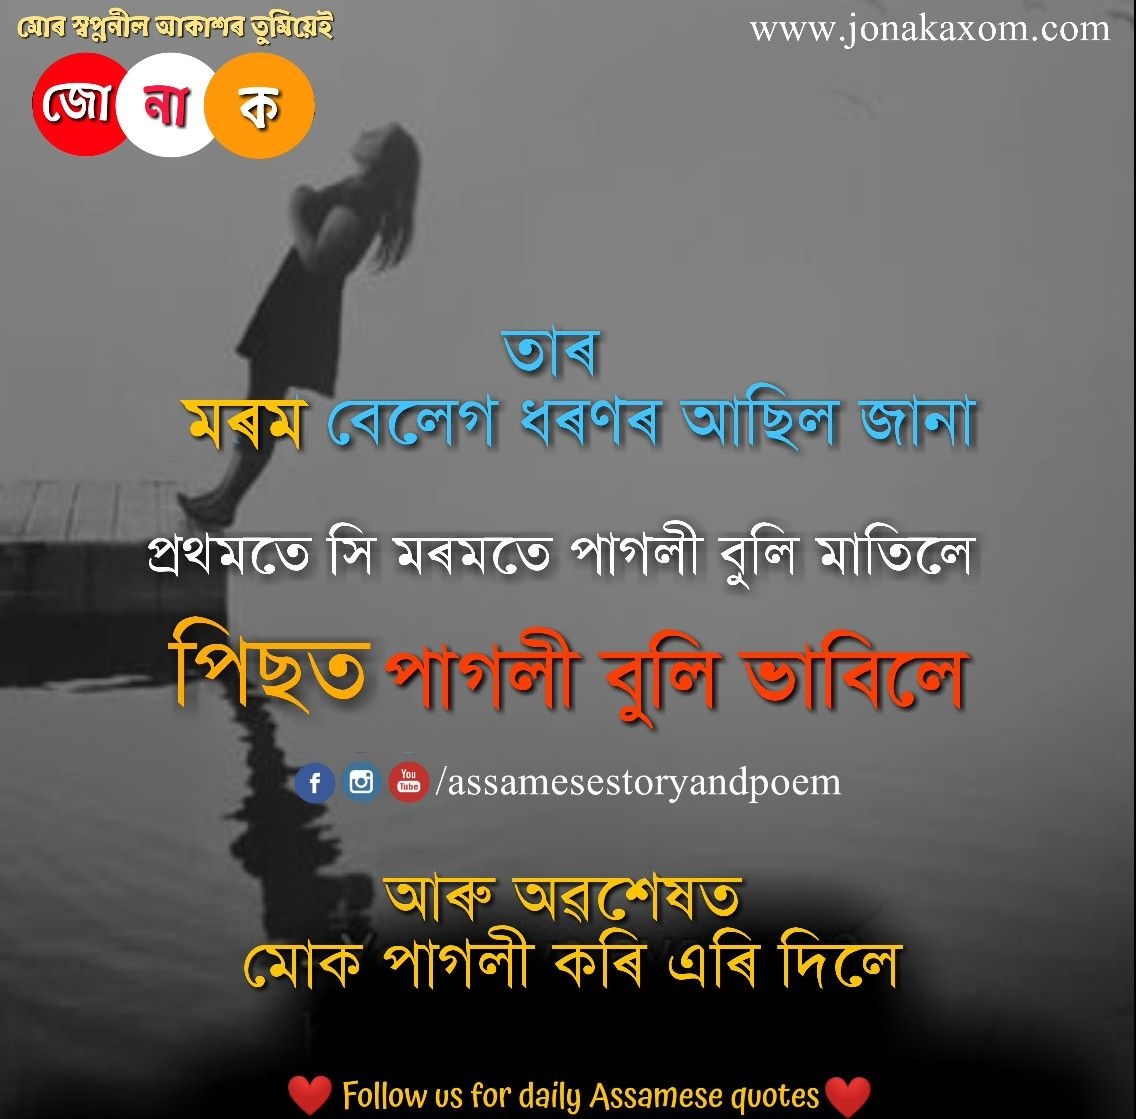 Assamese Quotes For Whatsapp Quotes For Whatsapp Love Poems Love Images